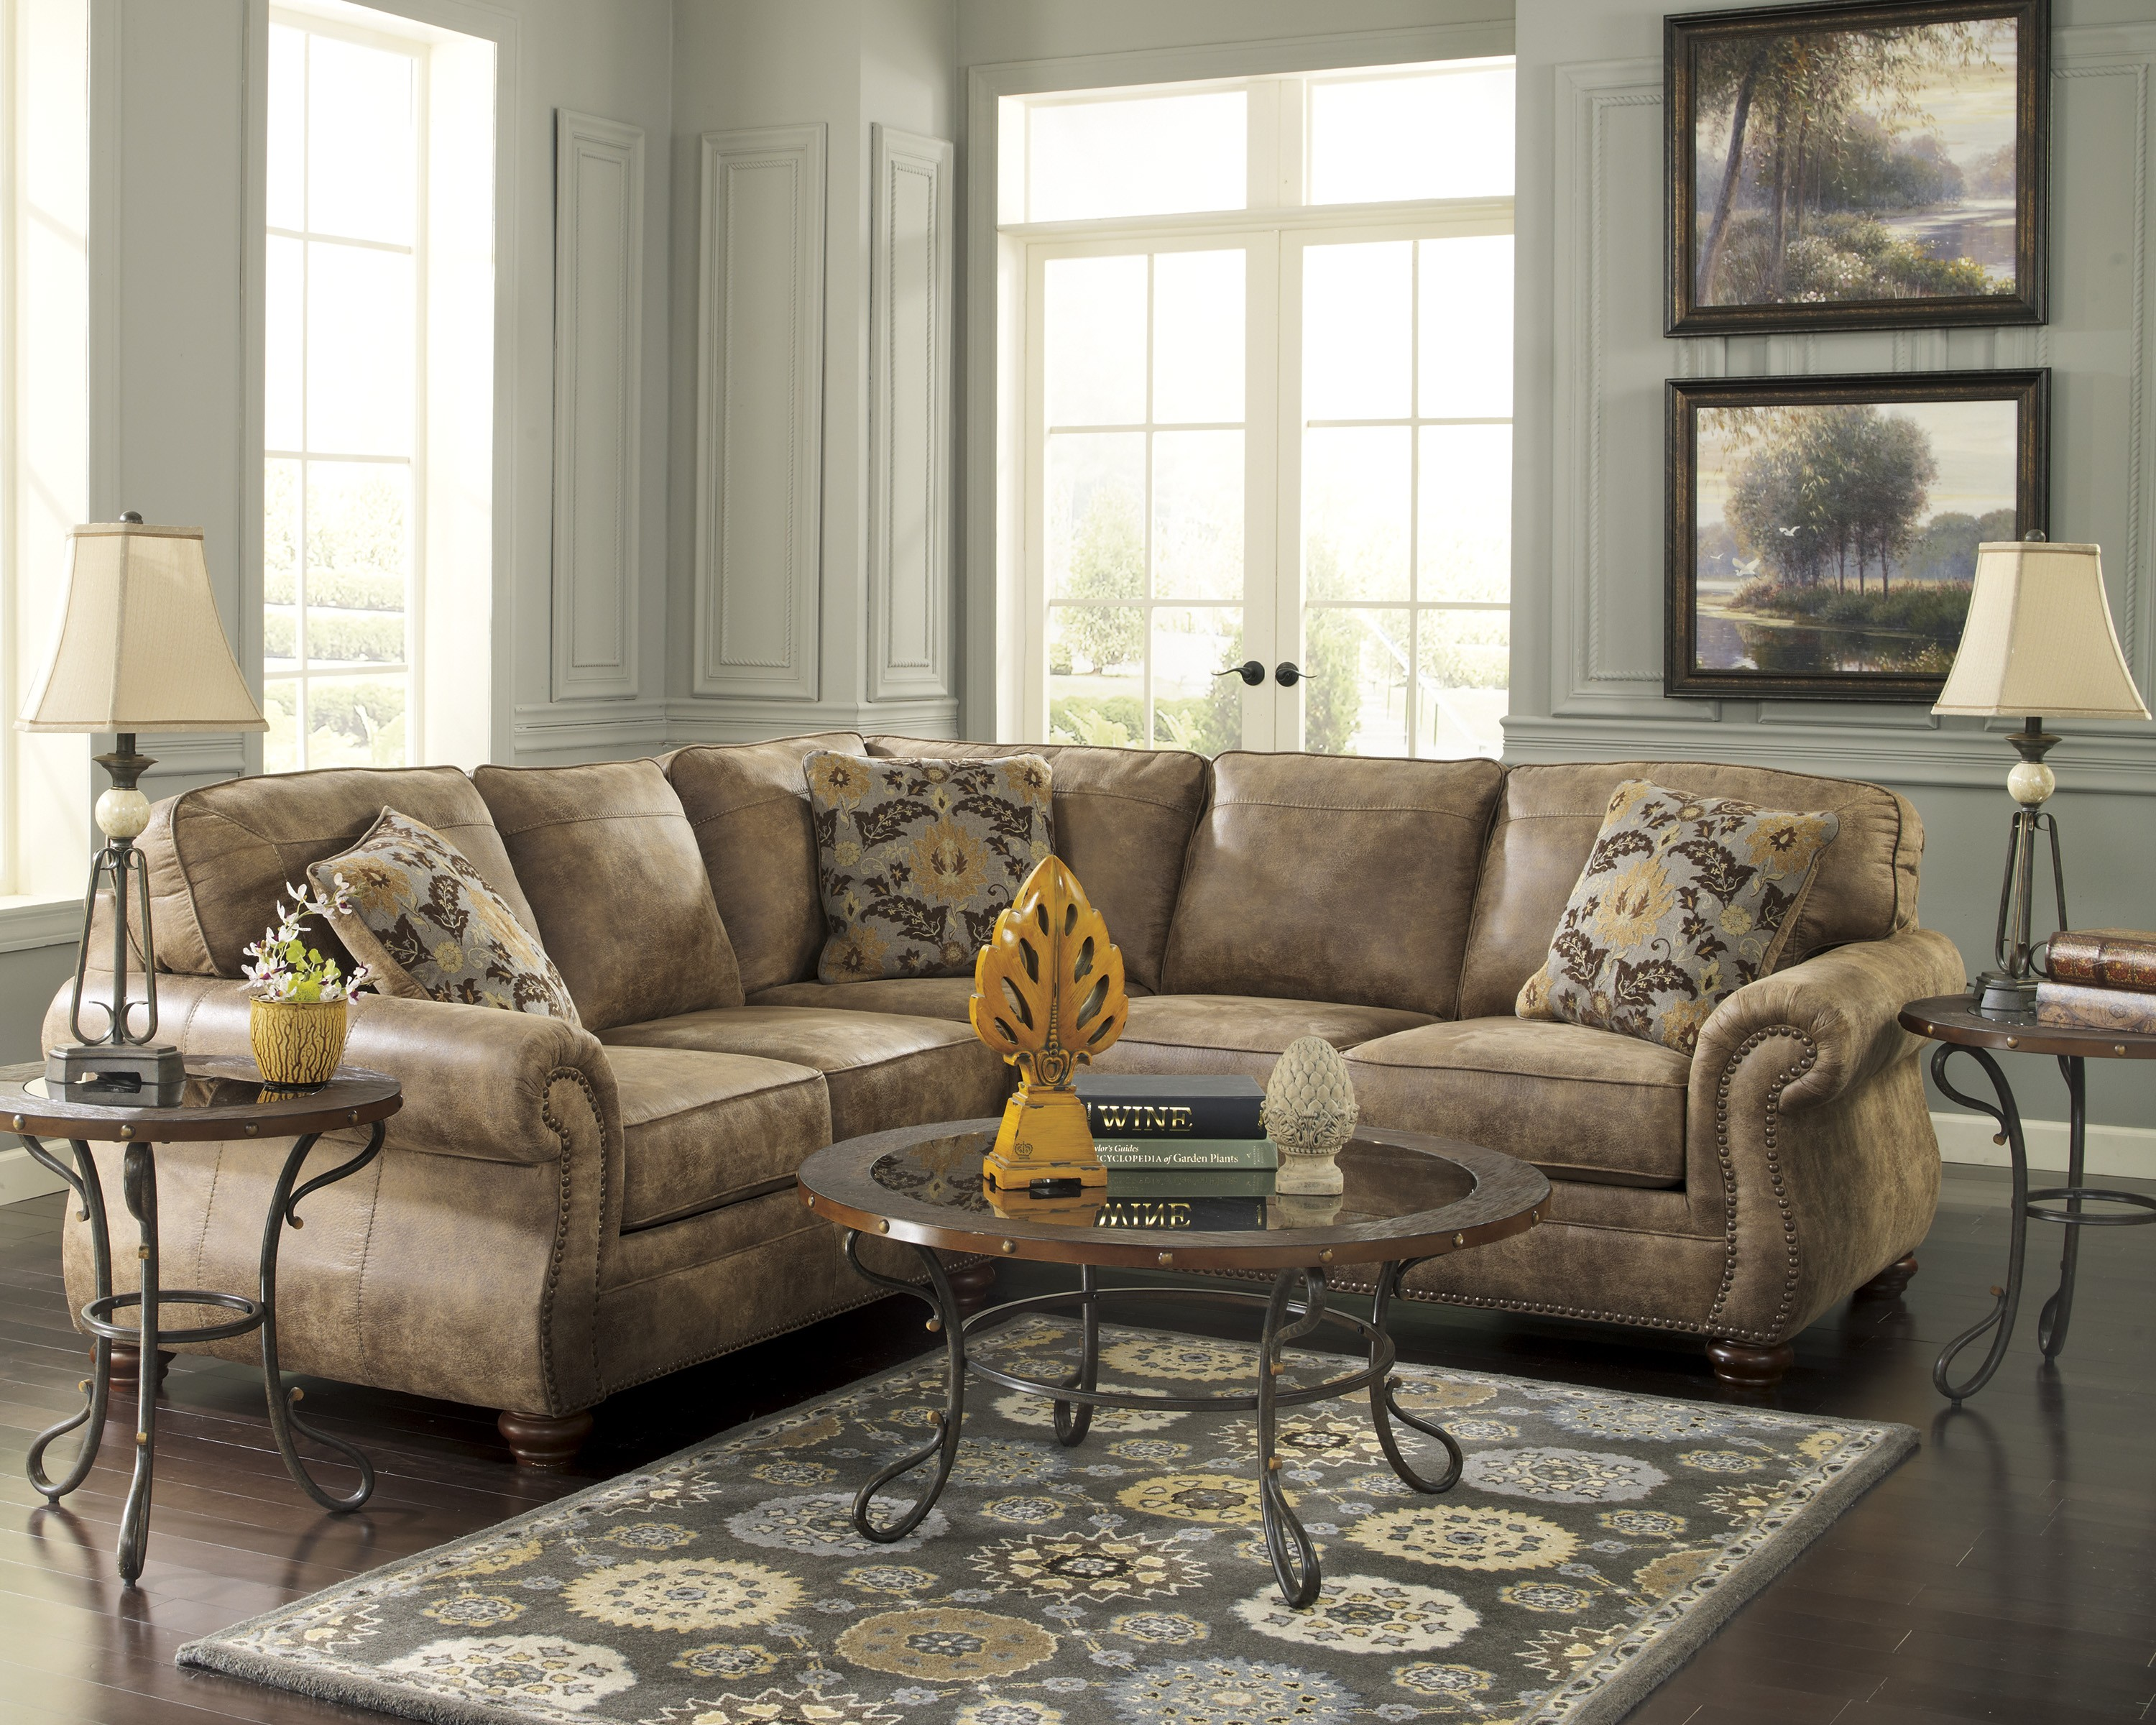 Awesome ashley furniture tucson for home furniture with ashley furniture tucson az